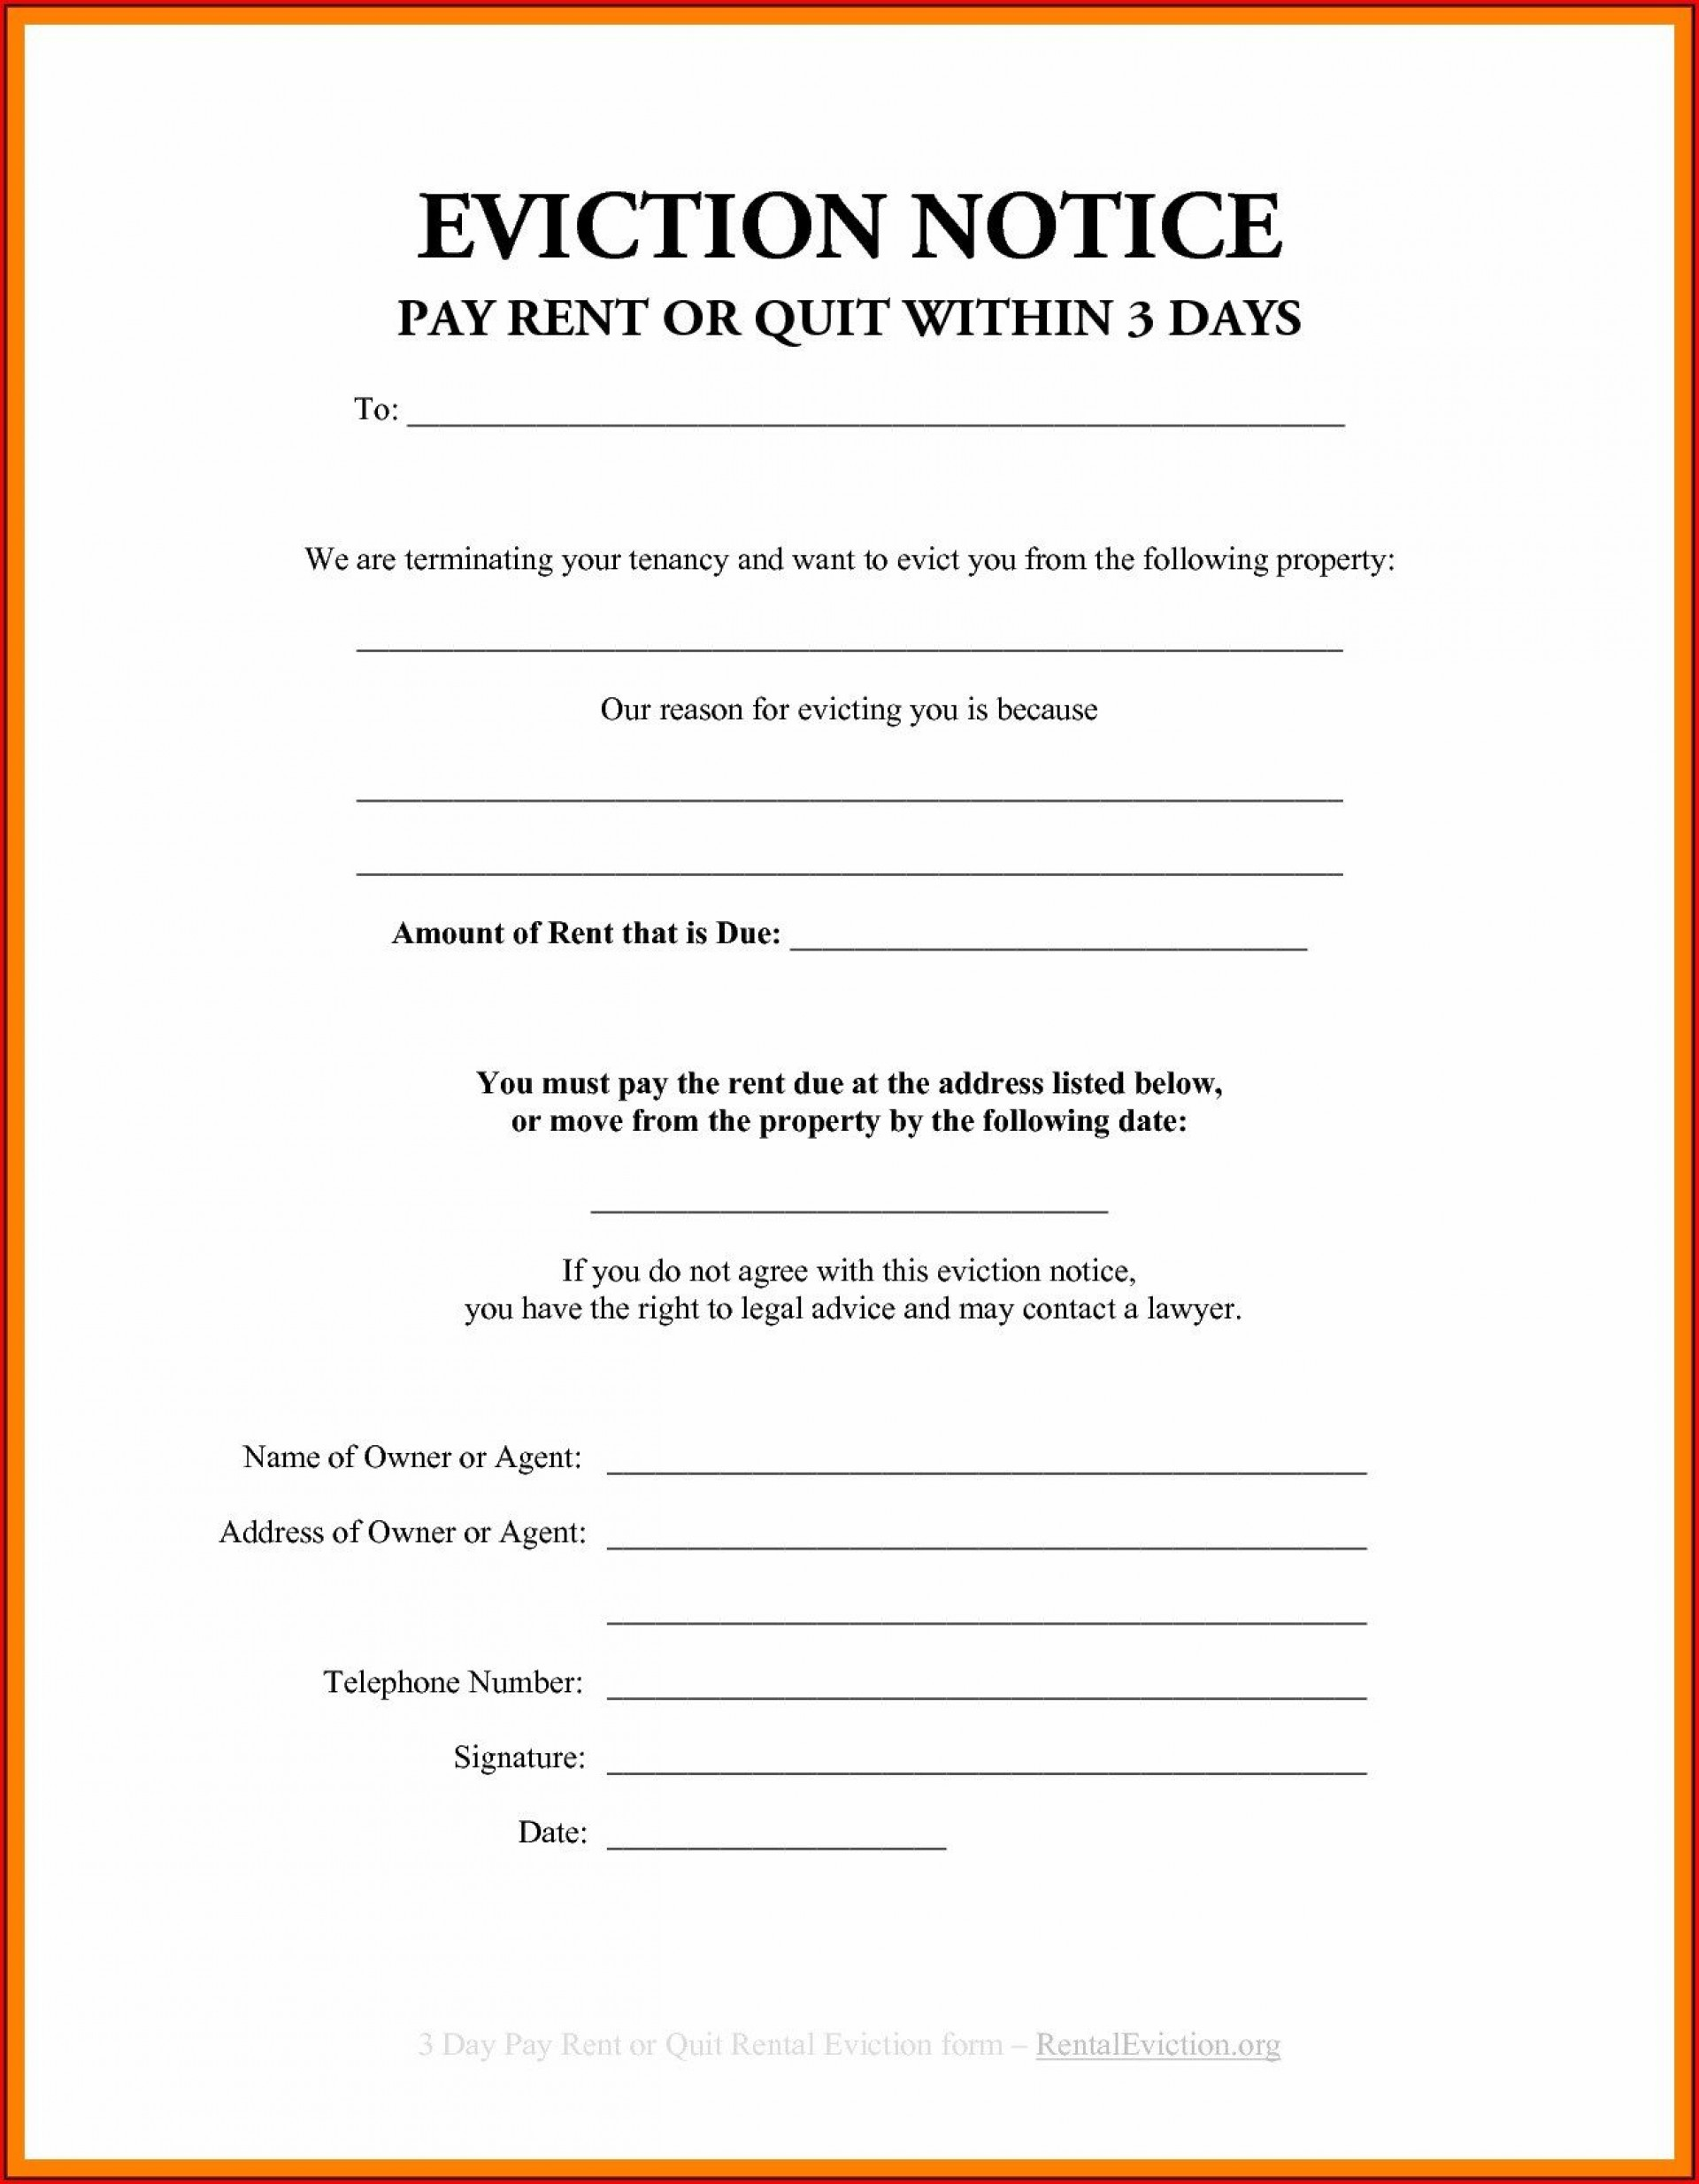 001 Stupendou Eviction Notice Template Free Design  30 Day Uk Word Document1920